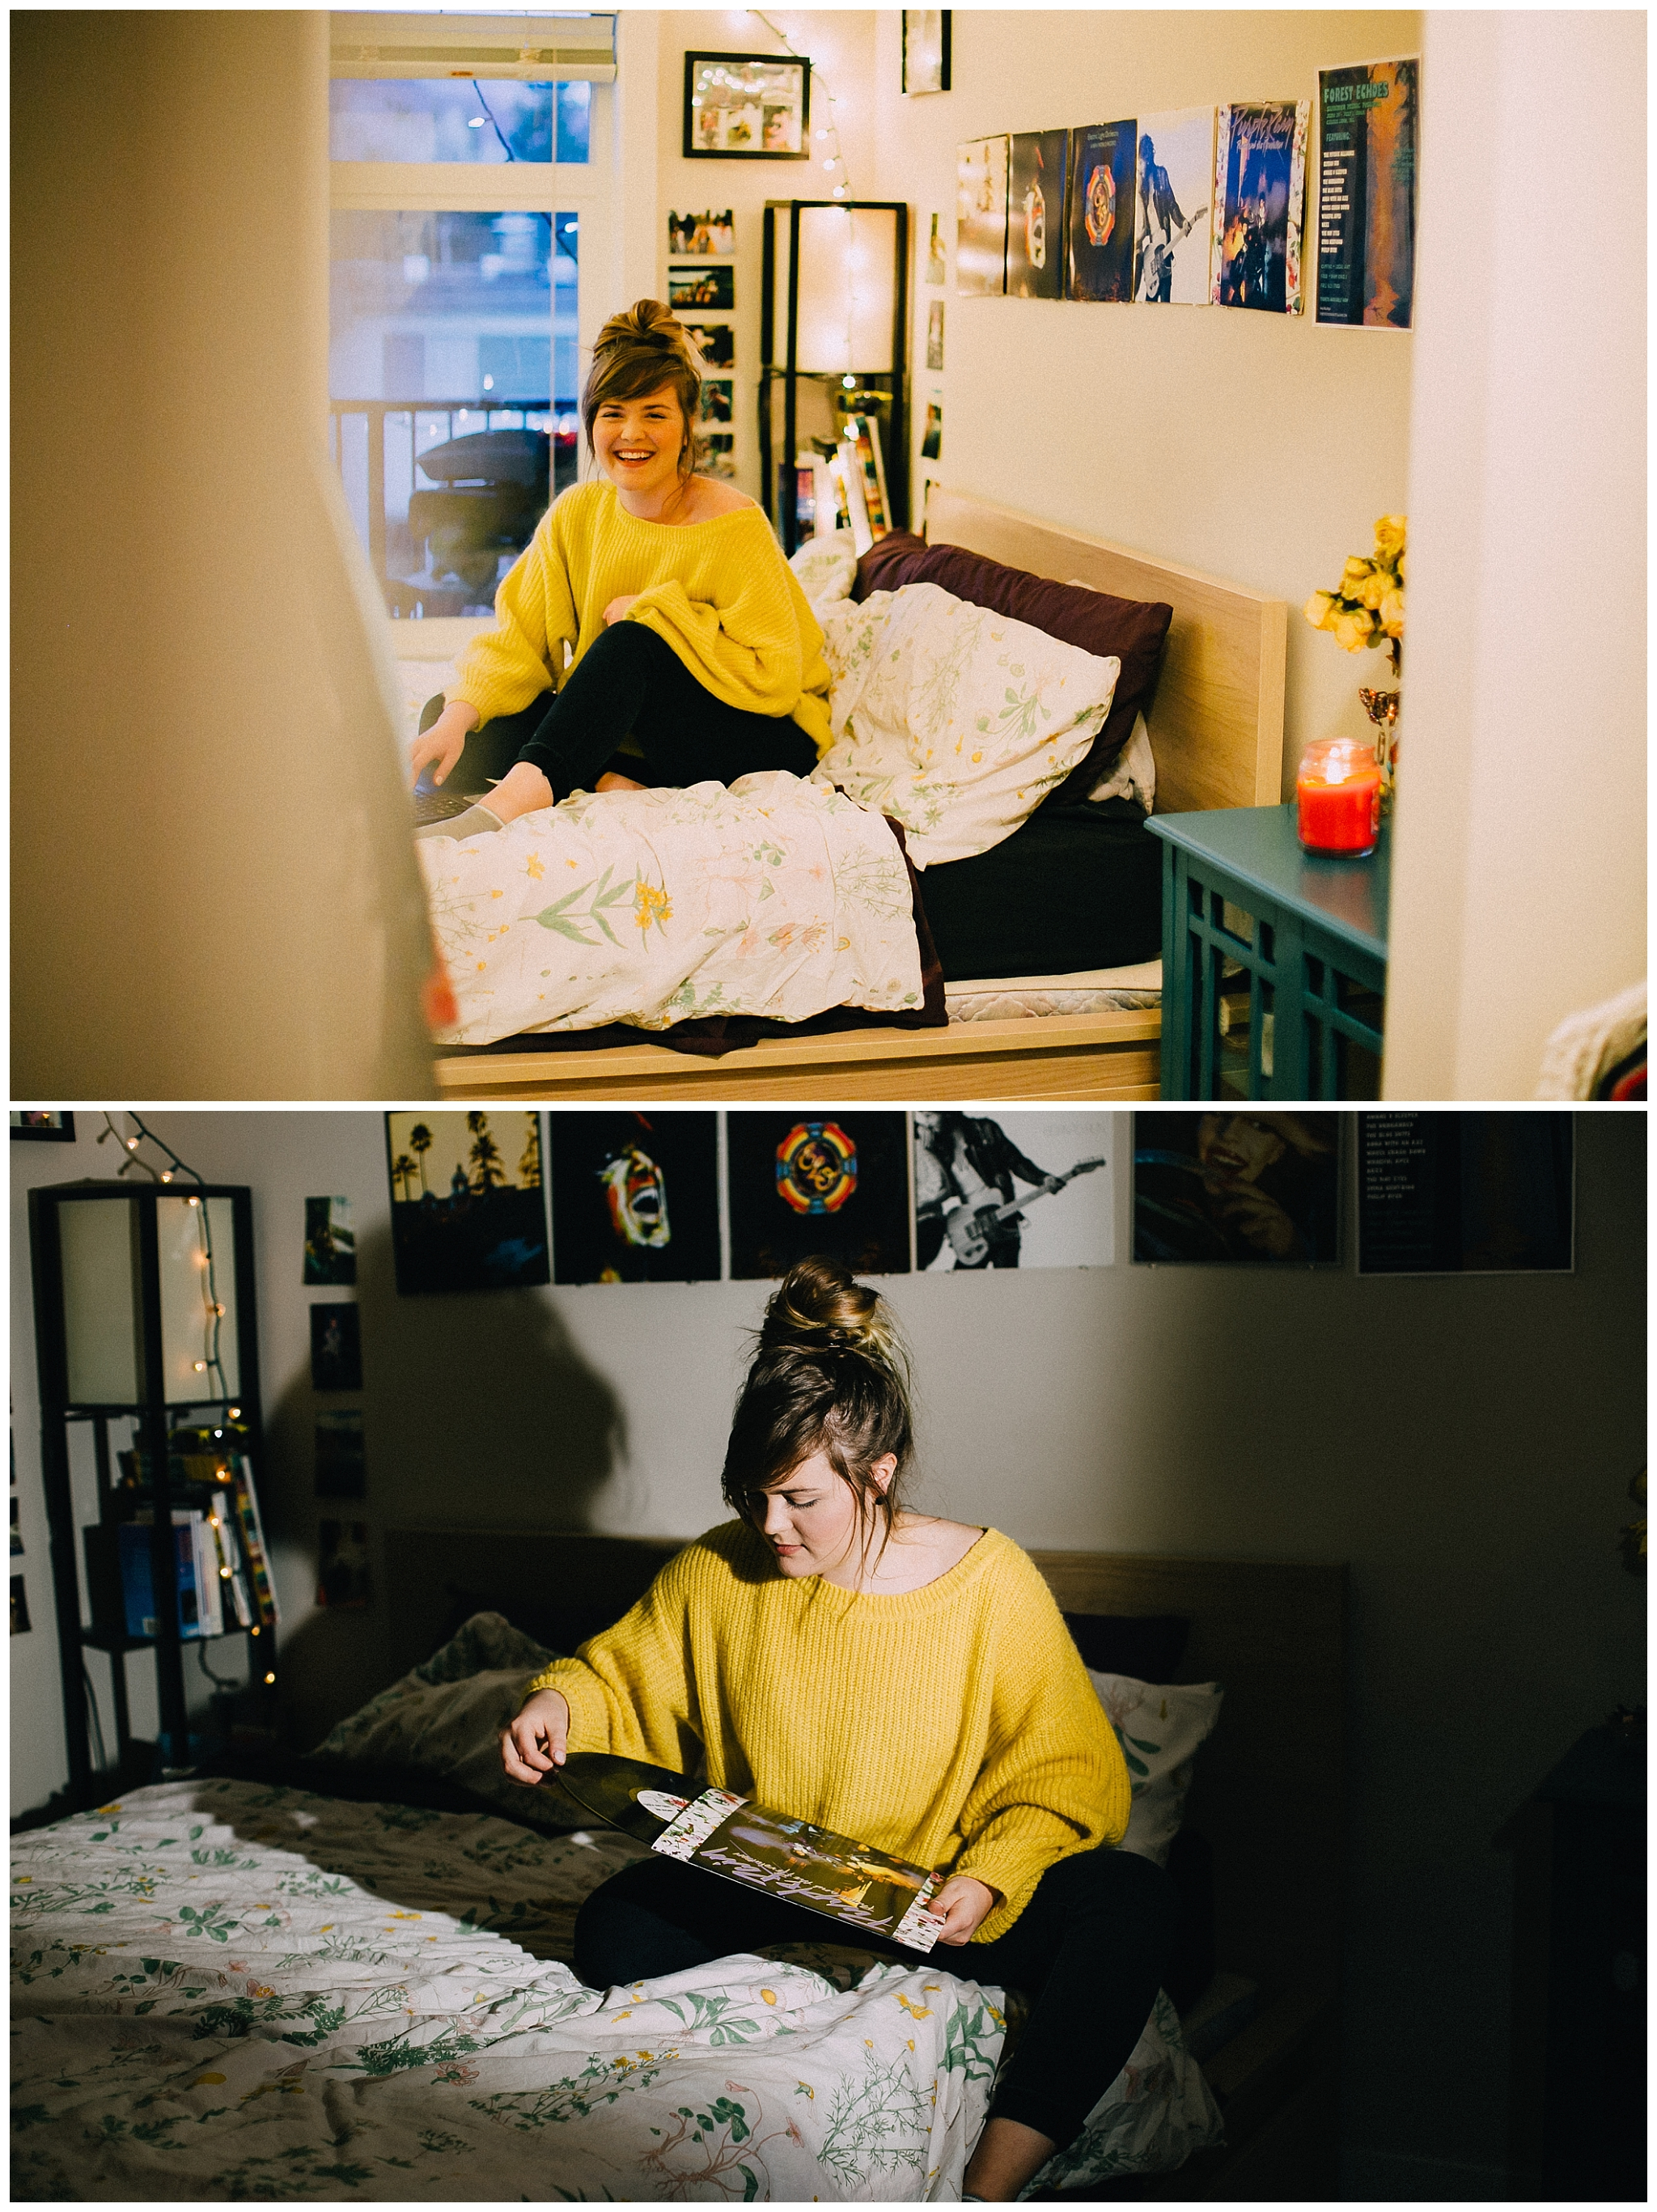 Before and after lighting: Image one is natural lighting in the apartment, image two is with one speedlite.